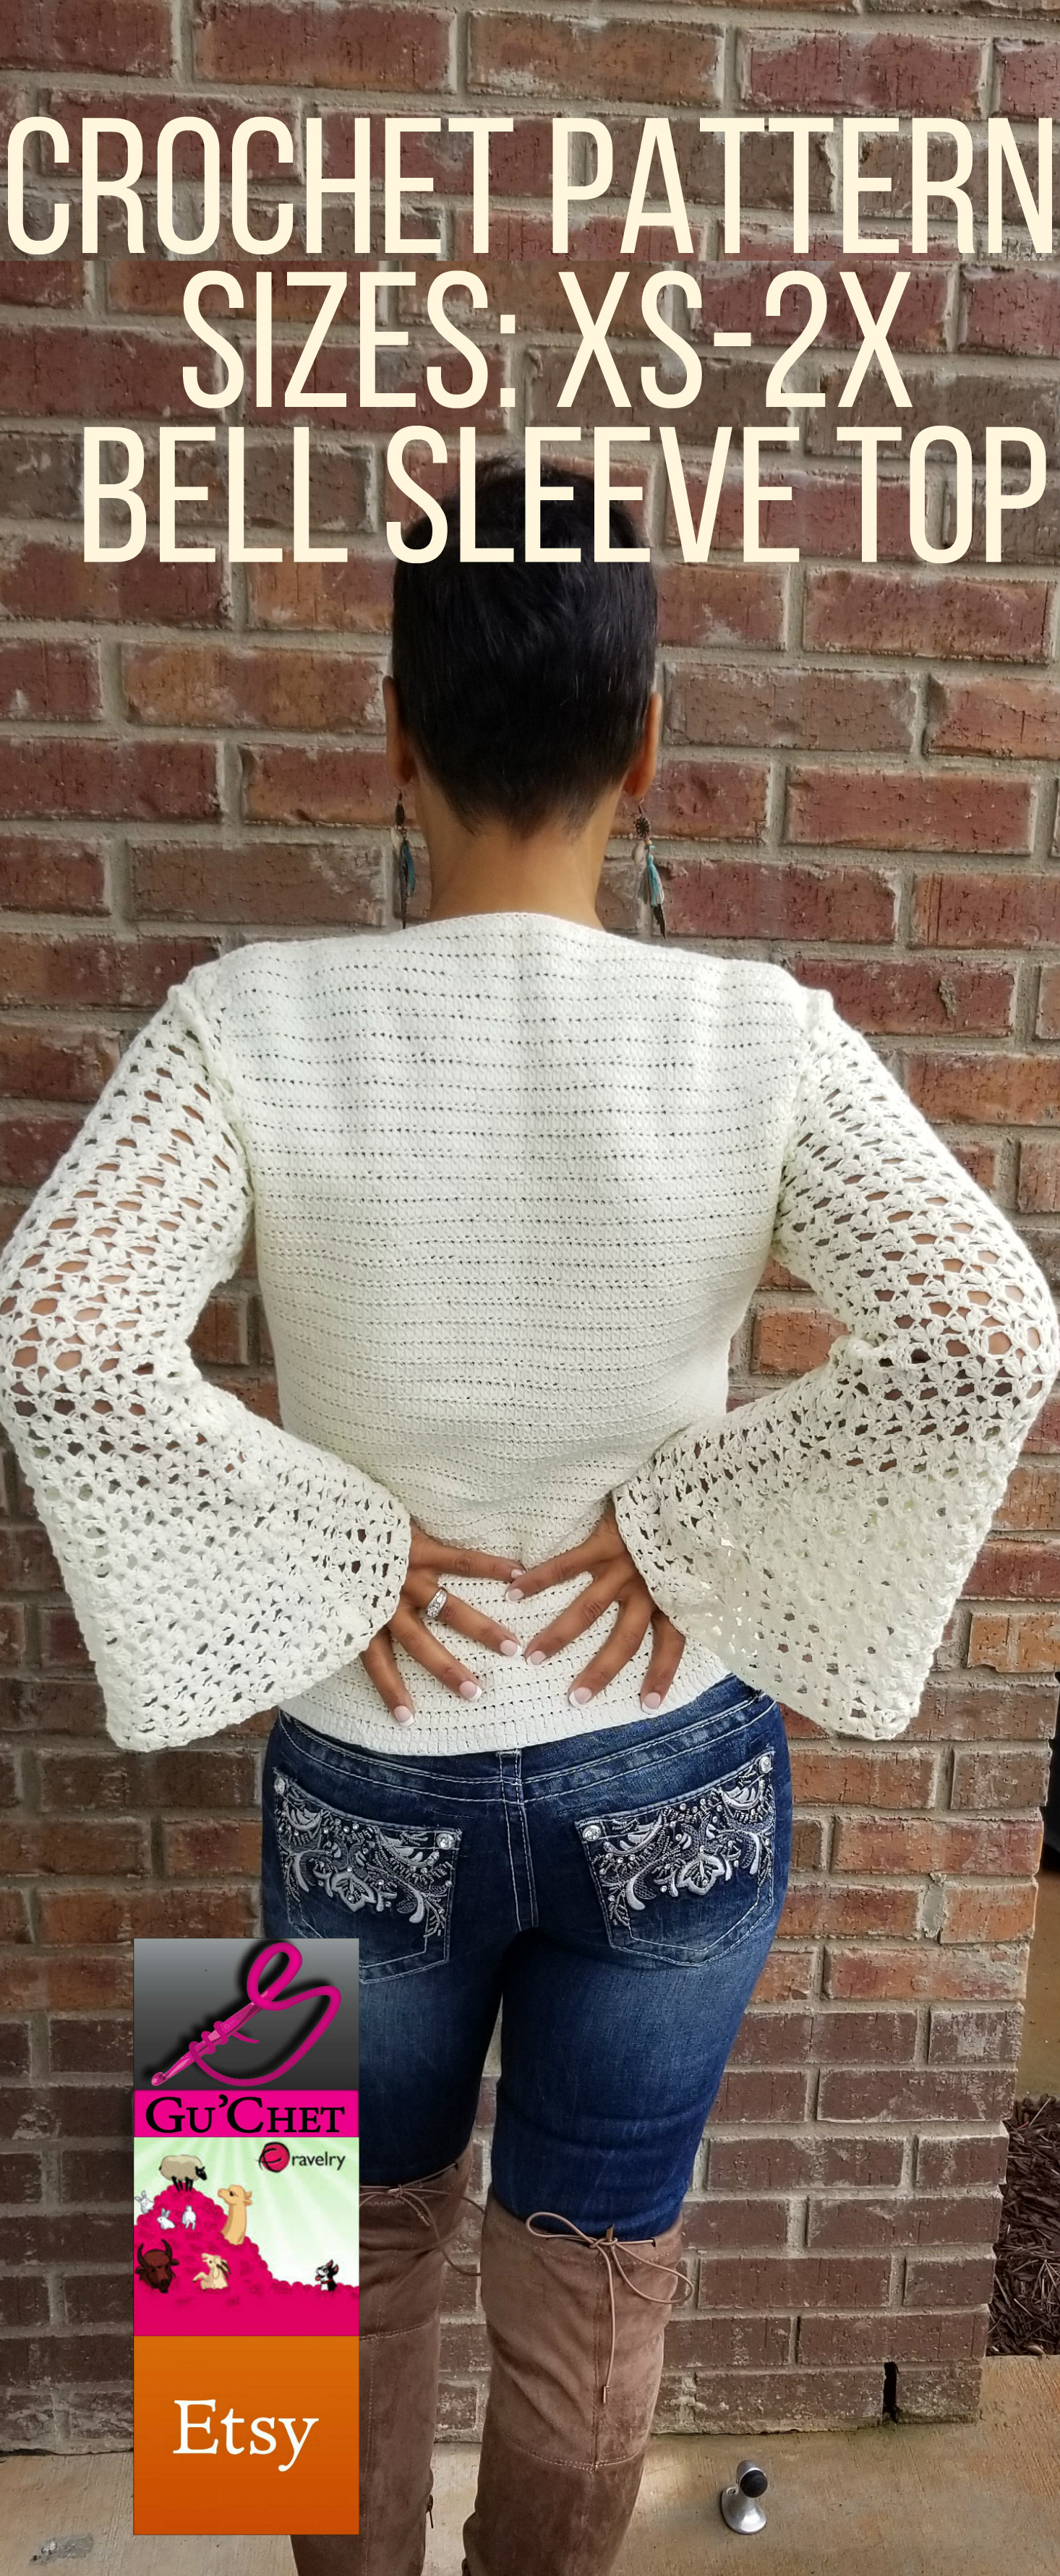 15_Crochet Top Pattern by GuChet_Bell Sleeve Top_9.jpg